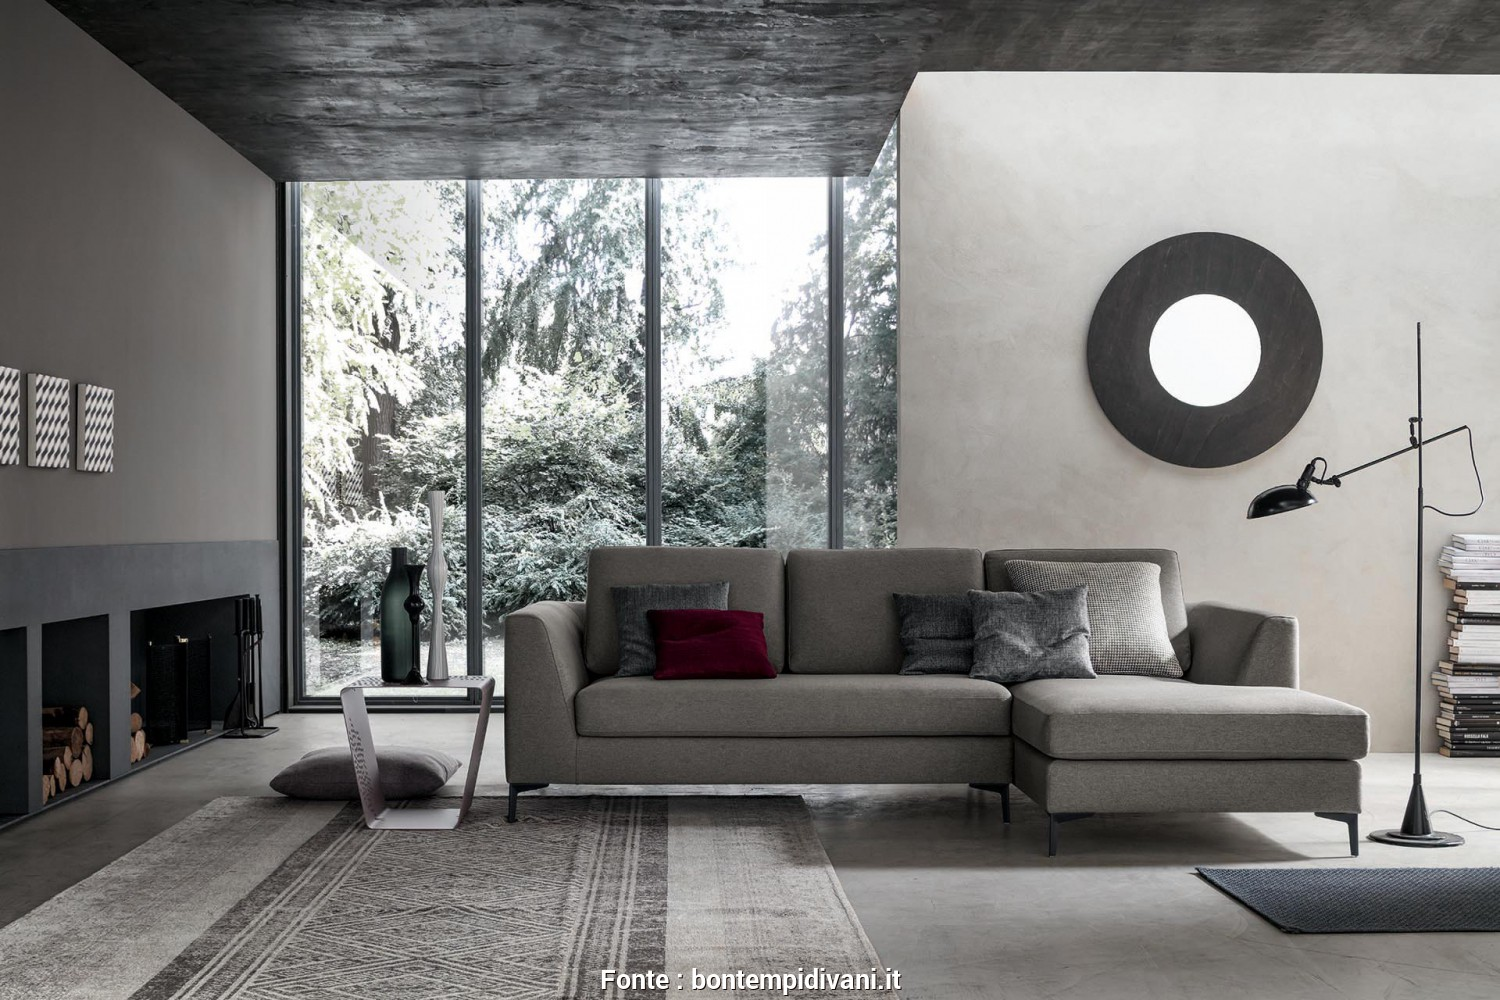 Bontempi Divani.It, Bello The Sofa Is Characterised By A Sinuous Armrest, Wide Seats. Merlino Finds, Place Inside, House As, Real Protagonist. It Creates A Perfect